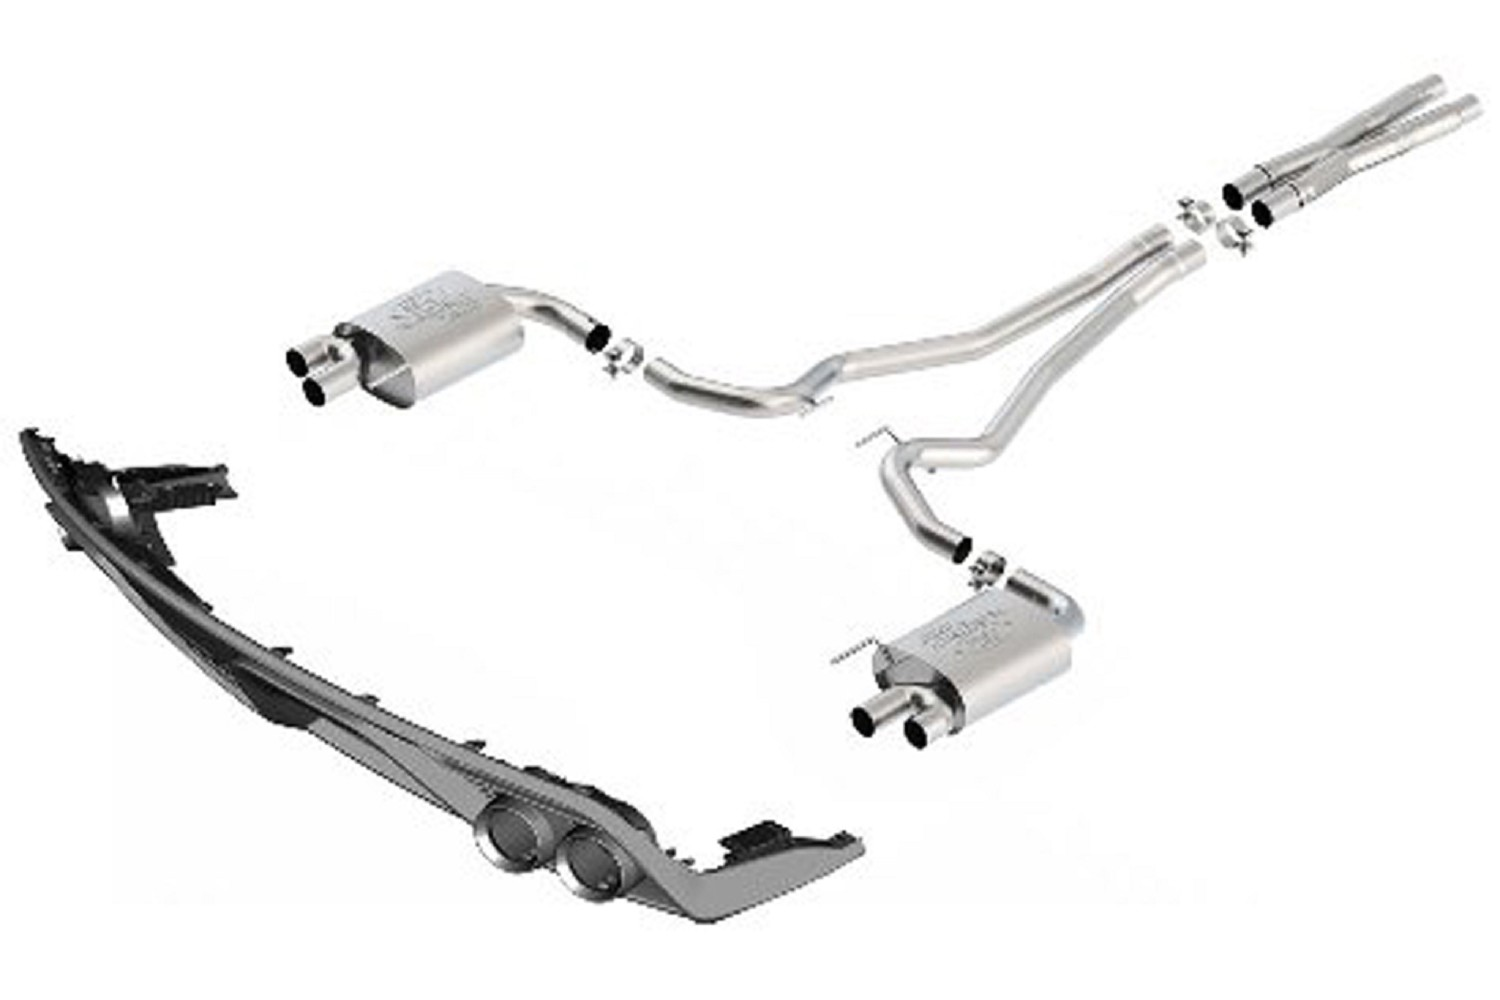 Ford performance mustang gt quad tip touring cat back exhaust w gt350 rear valance 15 17 gt 161 m 5200 m8tbv free shipping steeda autosports